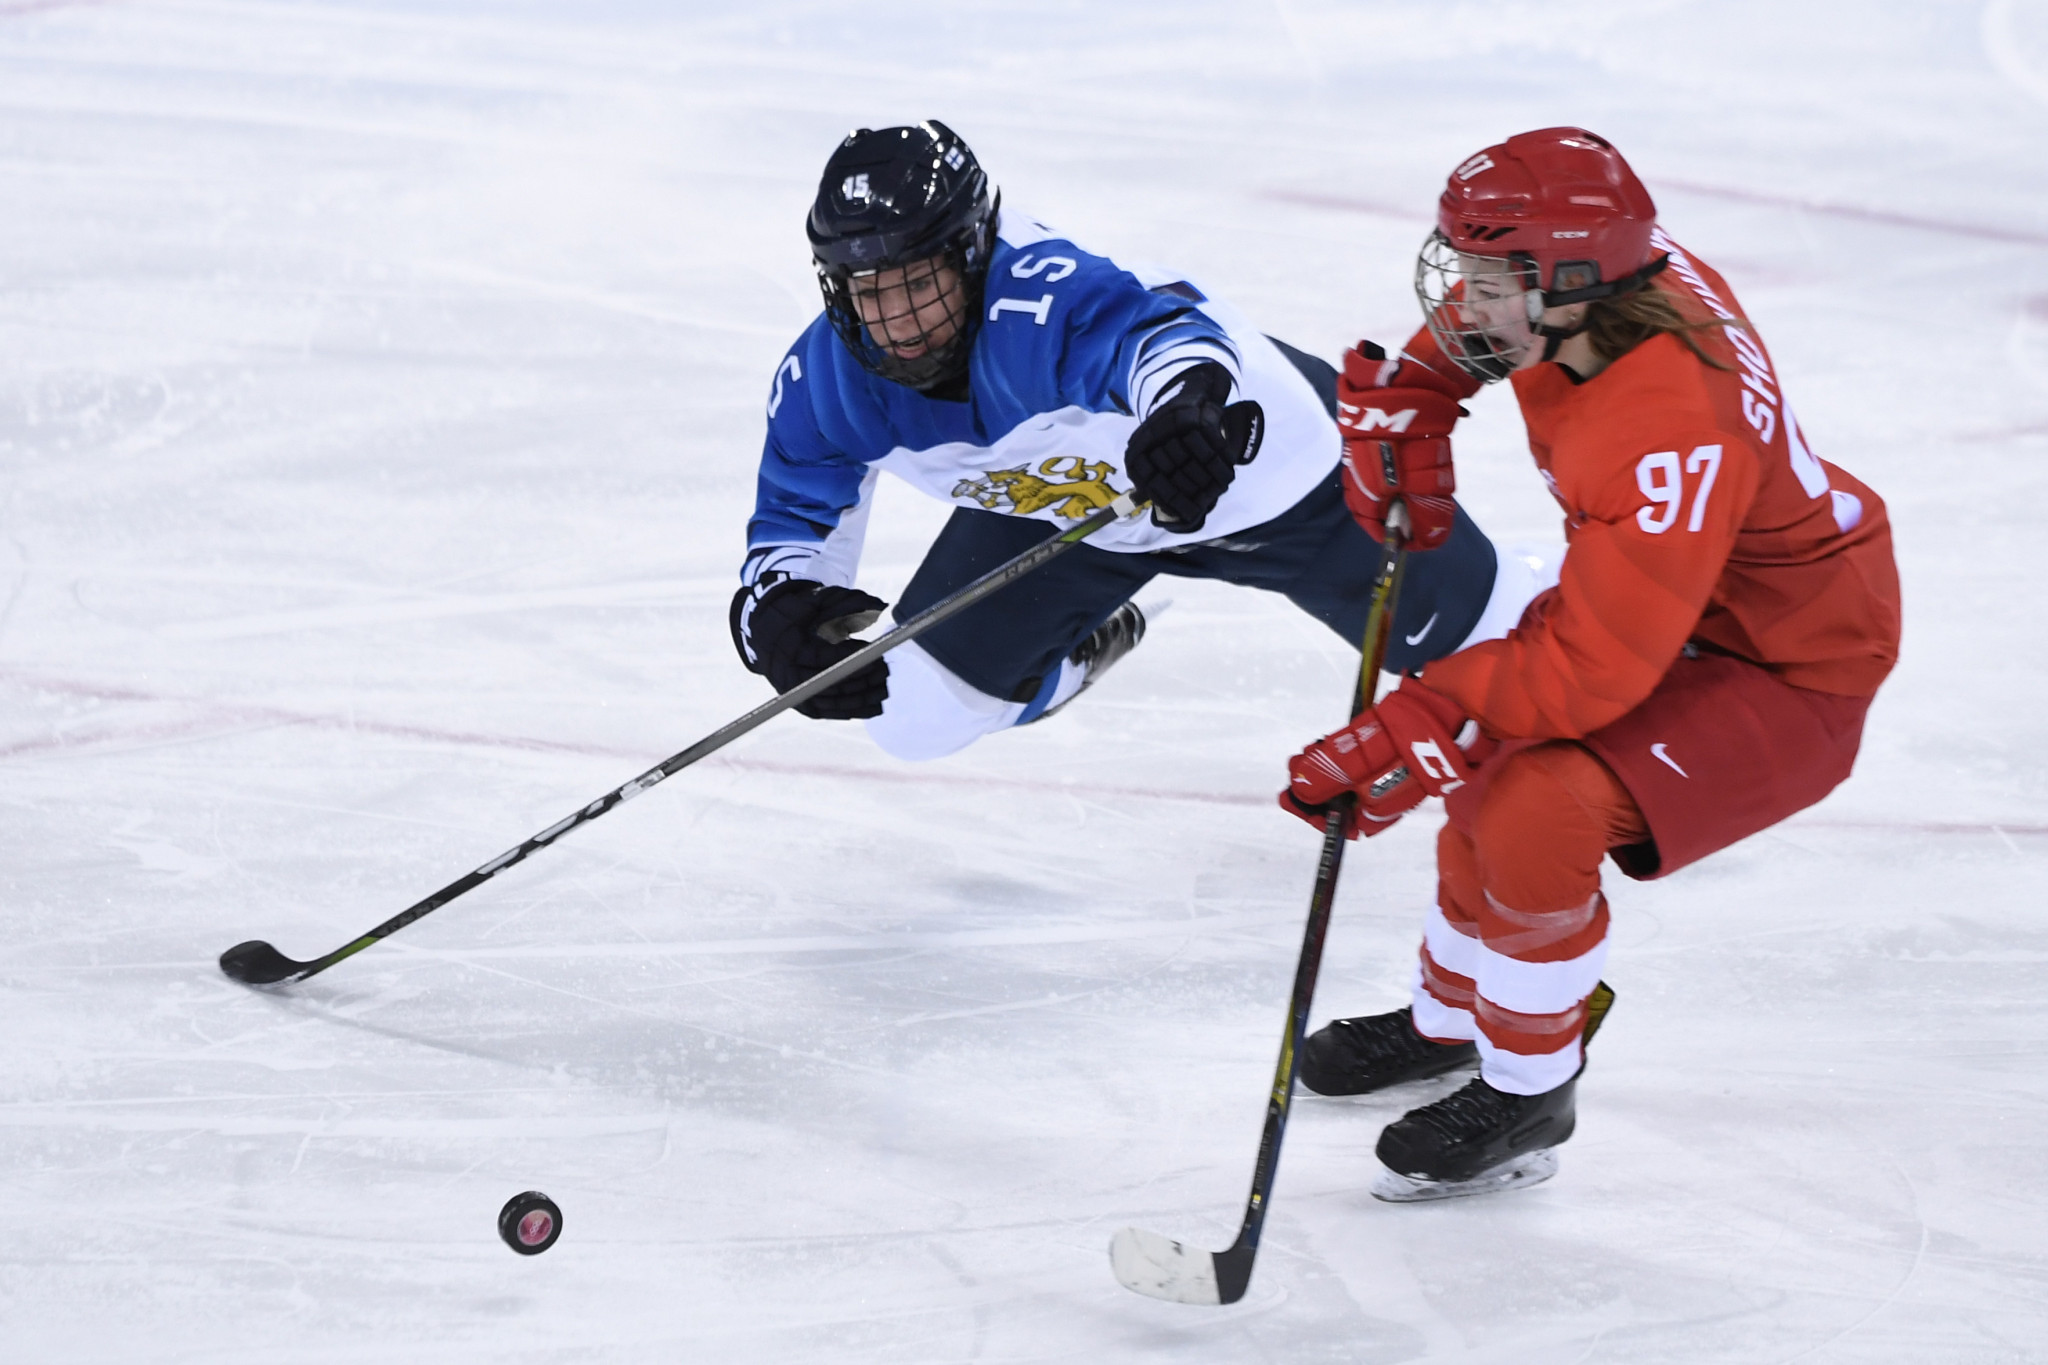 Russian ice hockey player Anna Shokhina has been suspended for two games for a kicking infraction in the Pyeongchang 2018 women's bronze medal game ©Getty Images